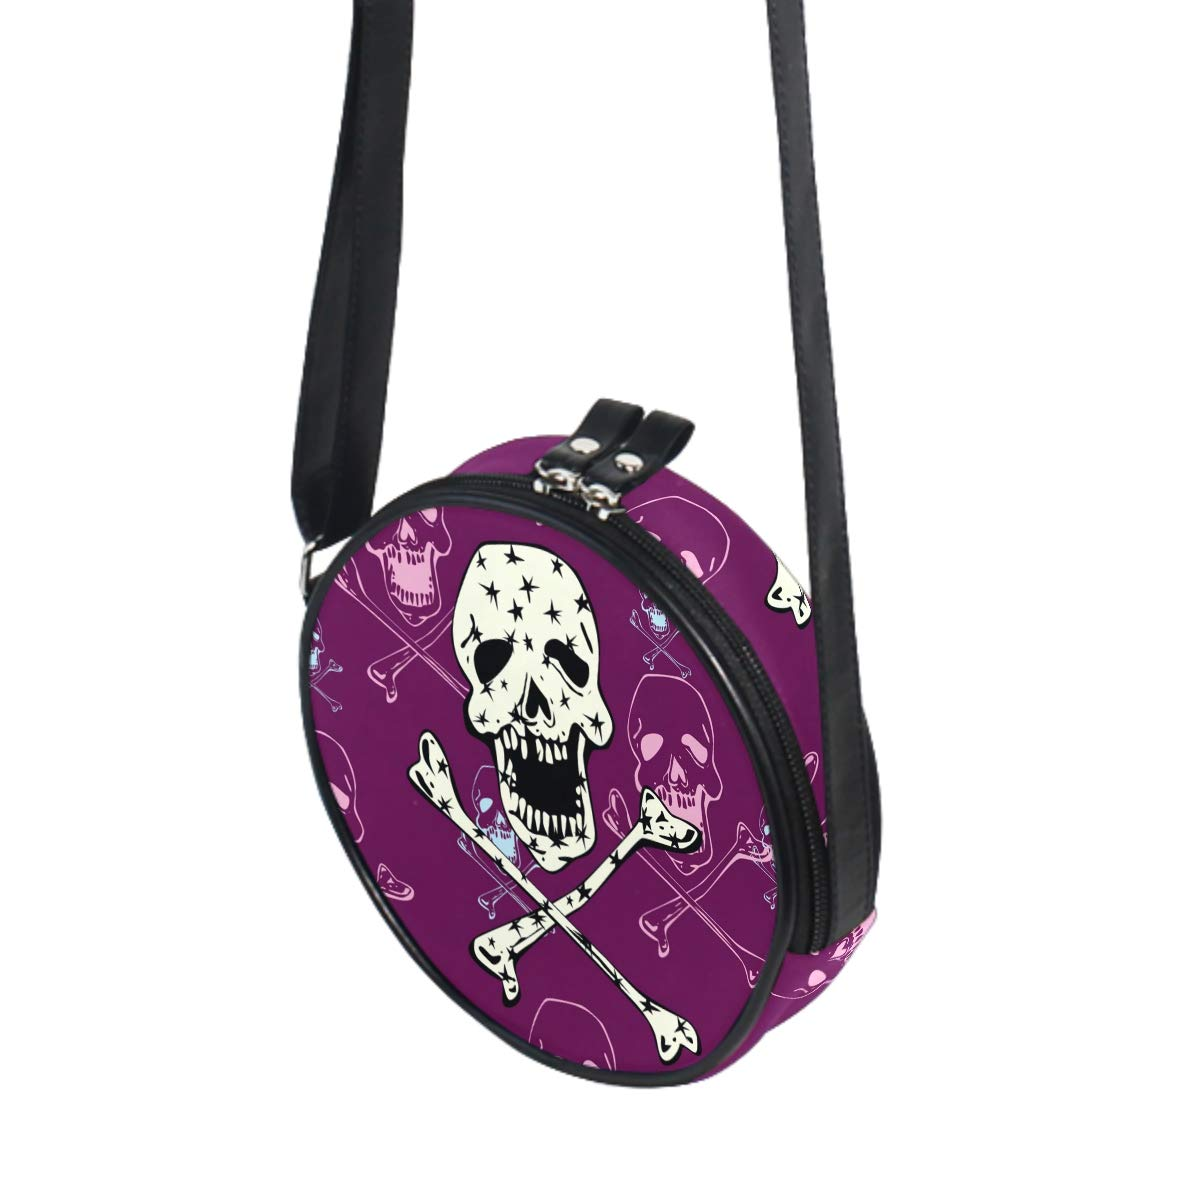 Skull With Stars Small Round Canvas Crossbody Messenger Bags for Women